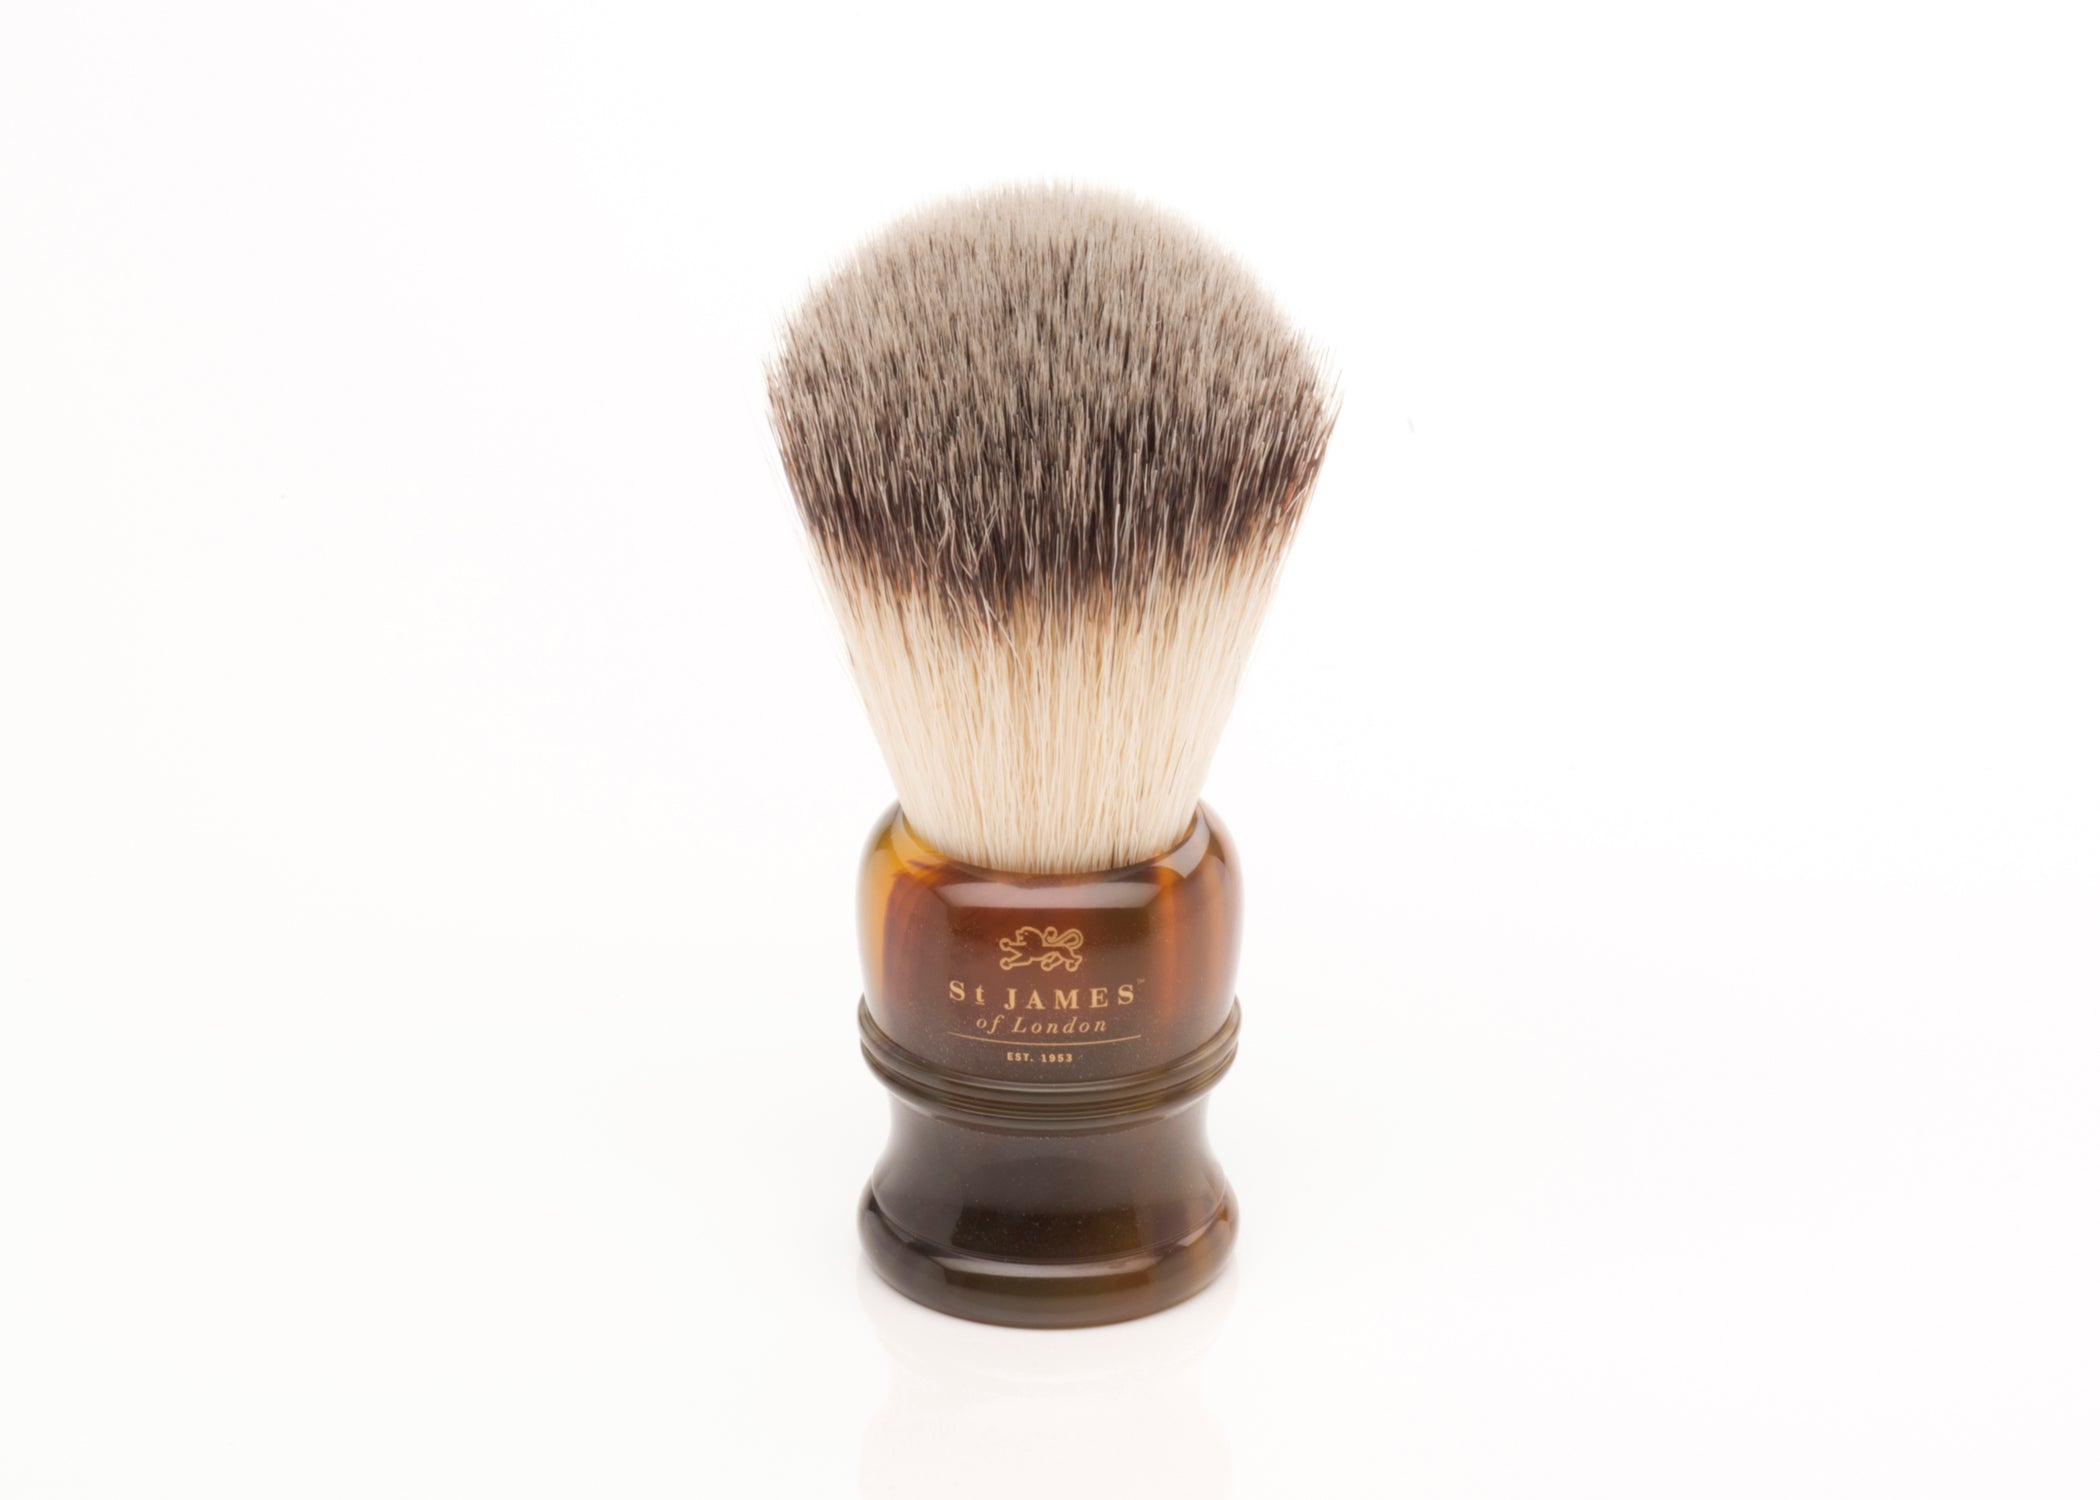 St James Tortoise Silvertip